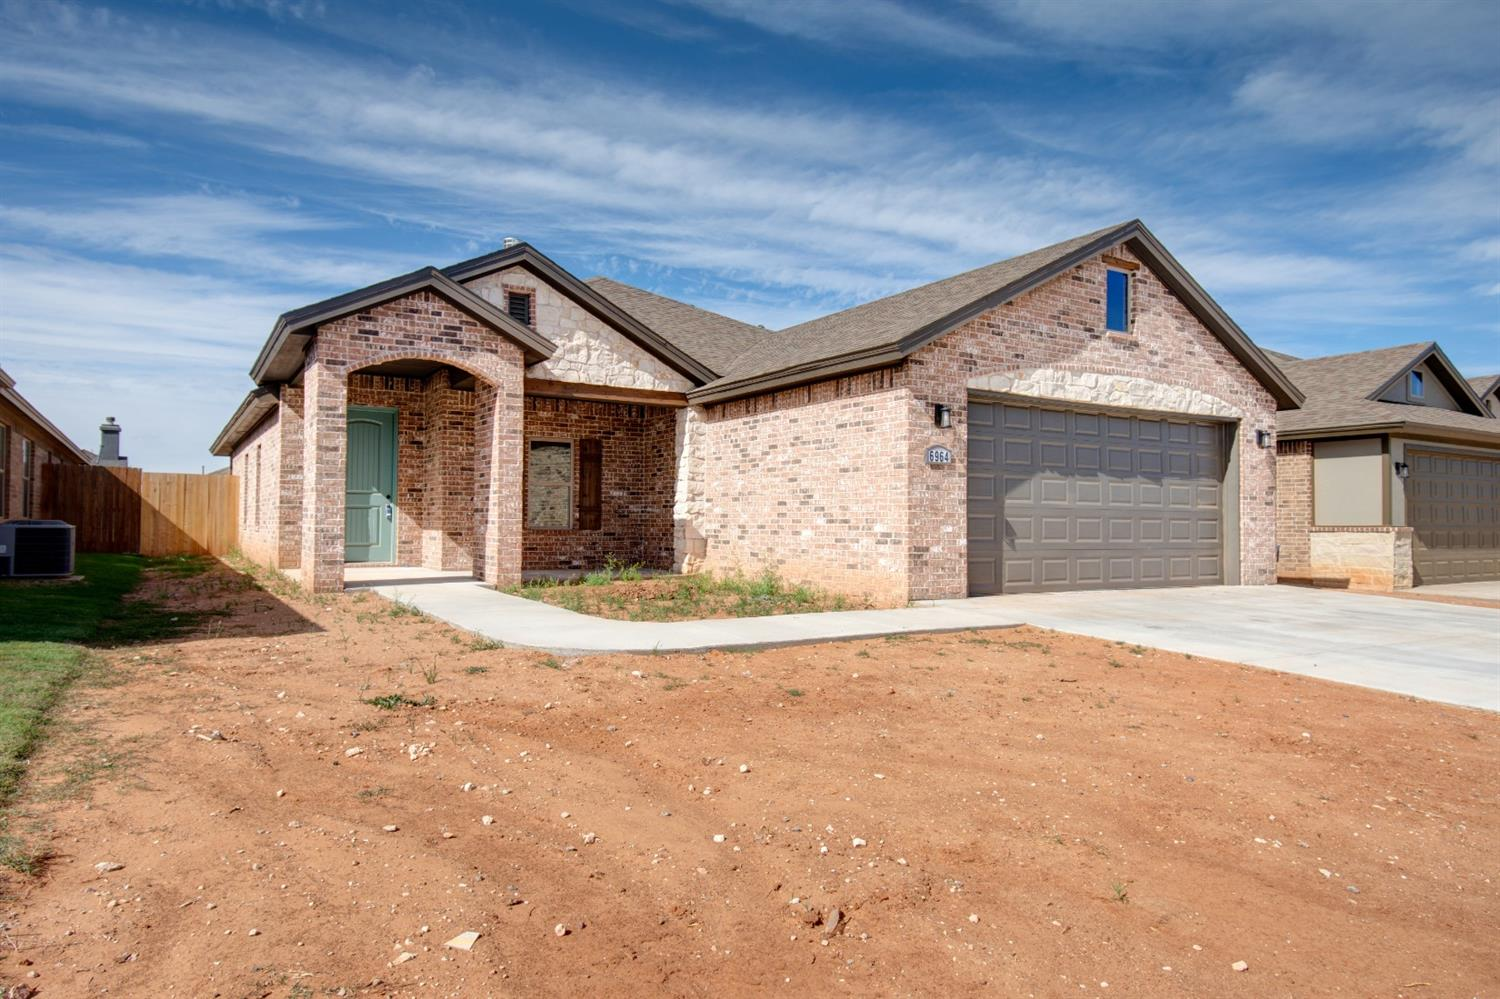 Outstanding new construction by Lifetime Homes, LLC. This amazing 4/2/2 in Bushland has everything you need to call home. Beautiful open concept living area opens up to the spacious kitchen with large granite island perfect for cooking and entertaining. Large pantry and plenty of cabinet space makes cooking and storing easy. Step into the spacious isolated master suite with his/hers sinks, a large jetted tub and separate shower and plenty of closet space. 3 extra bedrooms gives plenty of space for the whole family. Don't miss the large covered back porch perfect for grilling and relaxing. Lifetime Homes has left no detail overlooked. With over 20 years building experience you will surely be pleased at the high quality construction. Make this your home today. Sod and sprinklers to go in before move in.